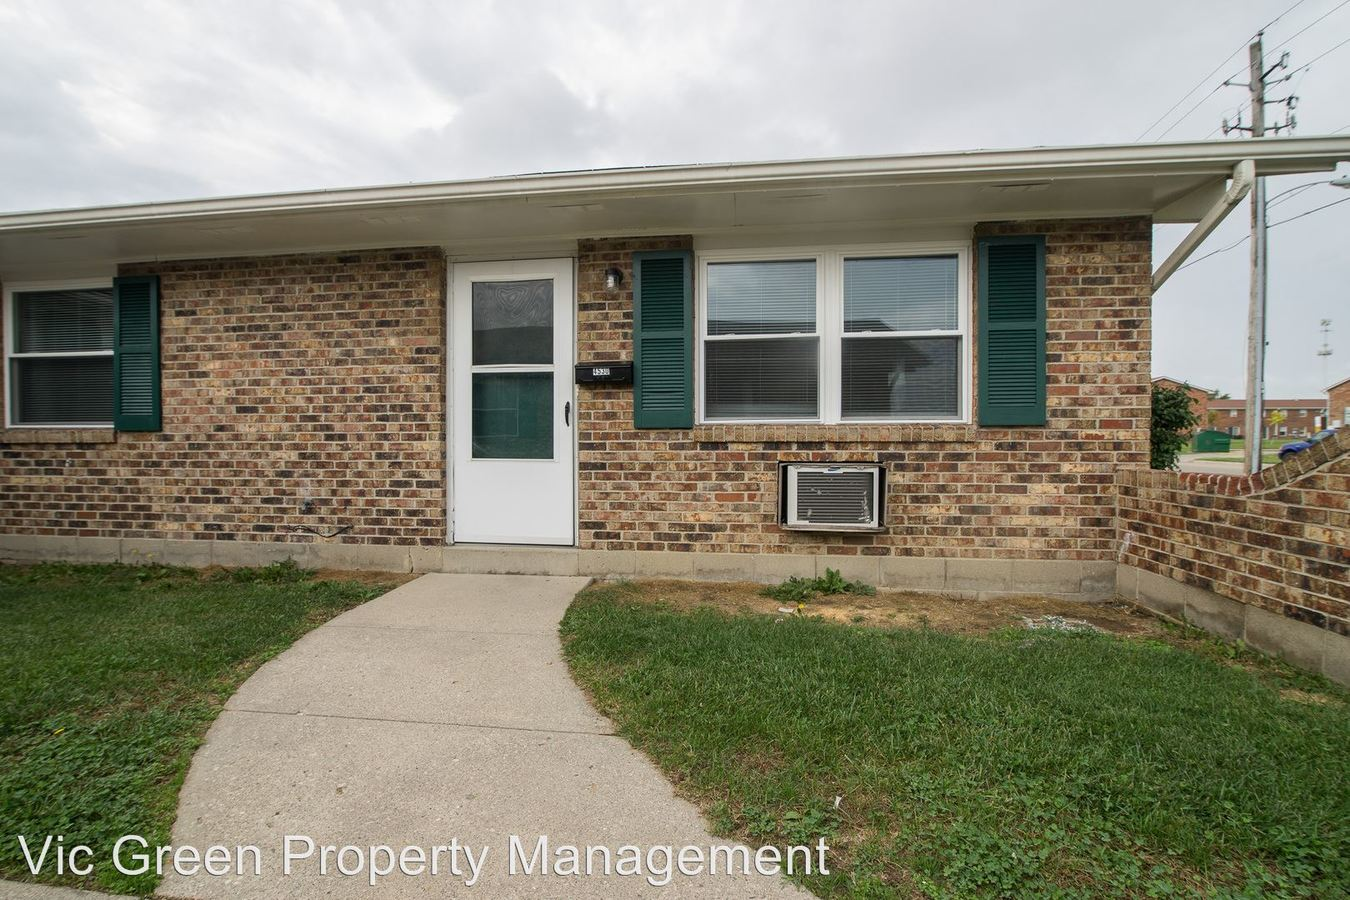 2 Bedrooms 1 Bathroom Apartment for rent at 4530 Bufort Blvd in Huber Heights, OH